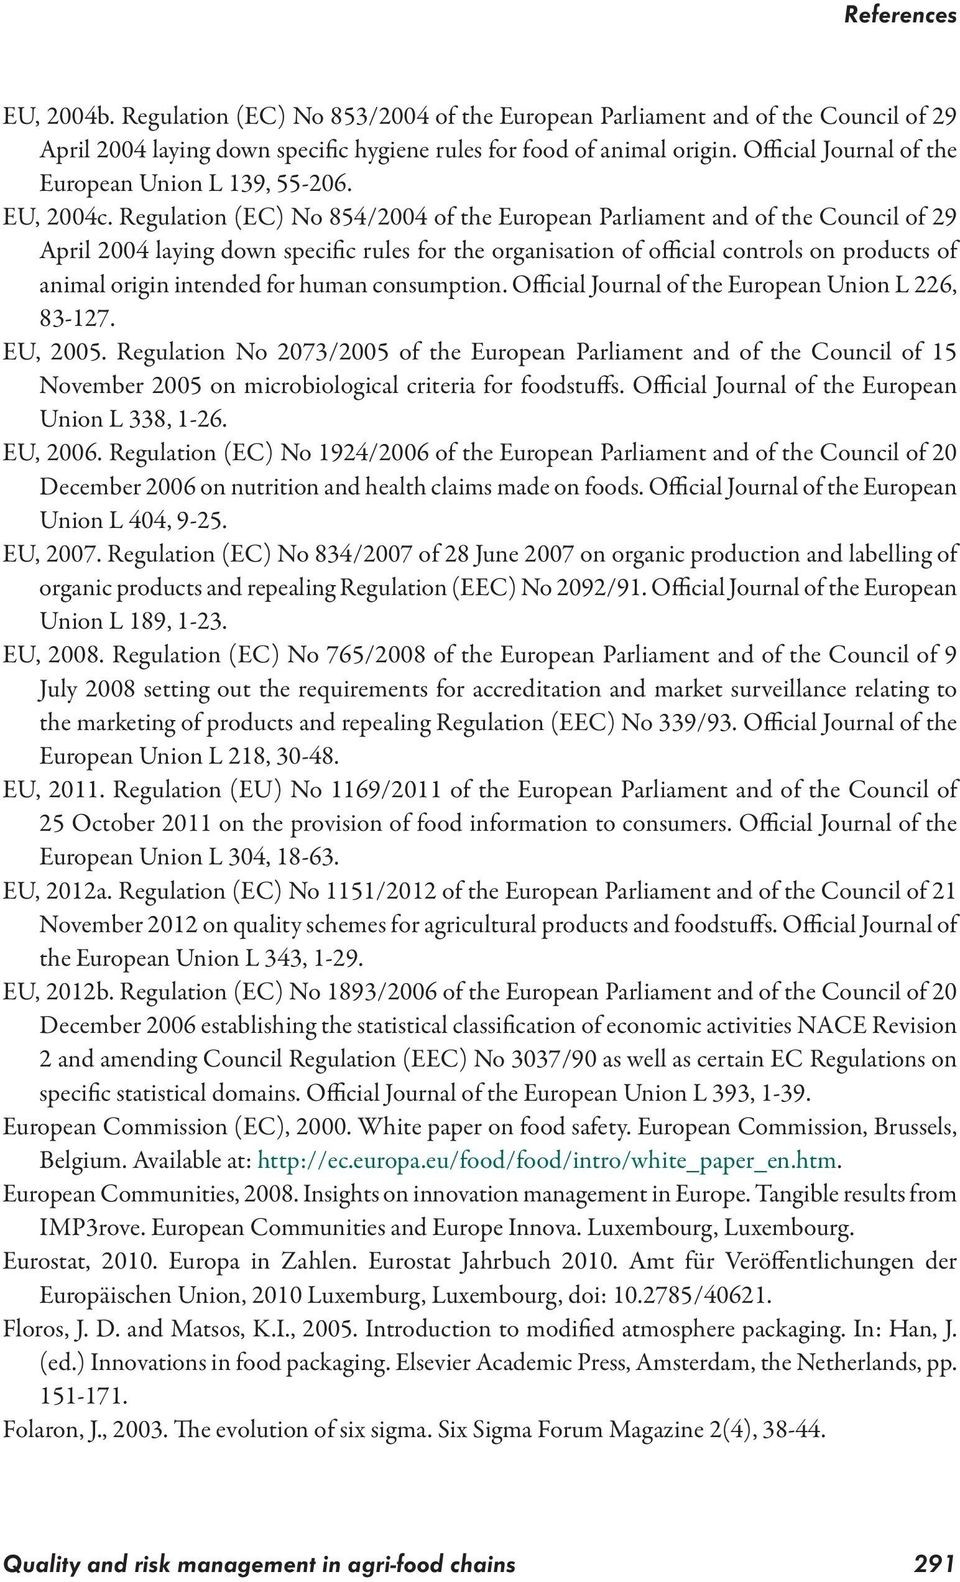 Regulation (EC) No 854/2004 of the European Parliament and of the Council of 29 April 2004 laying down specific rules for the organisation of official controls on products of animal origin intended